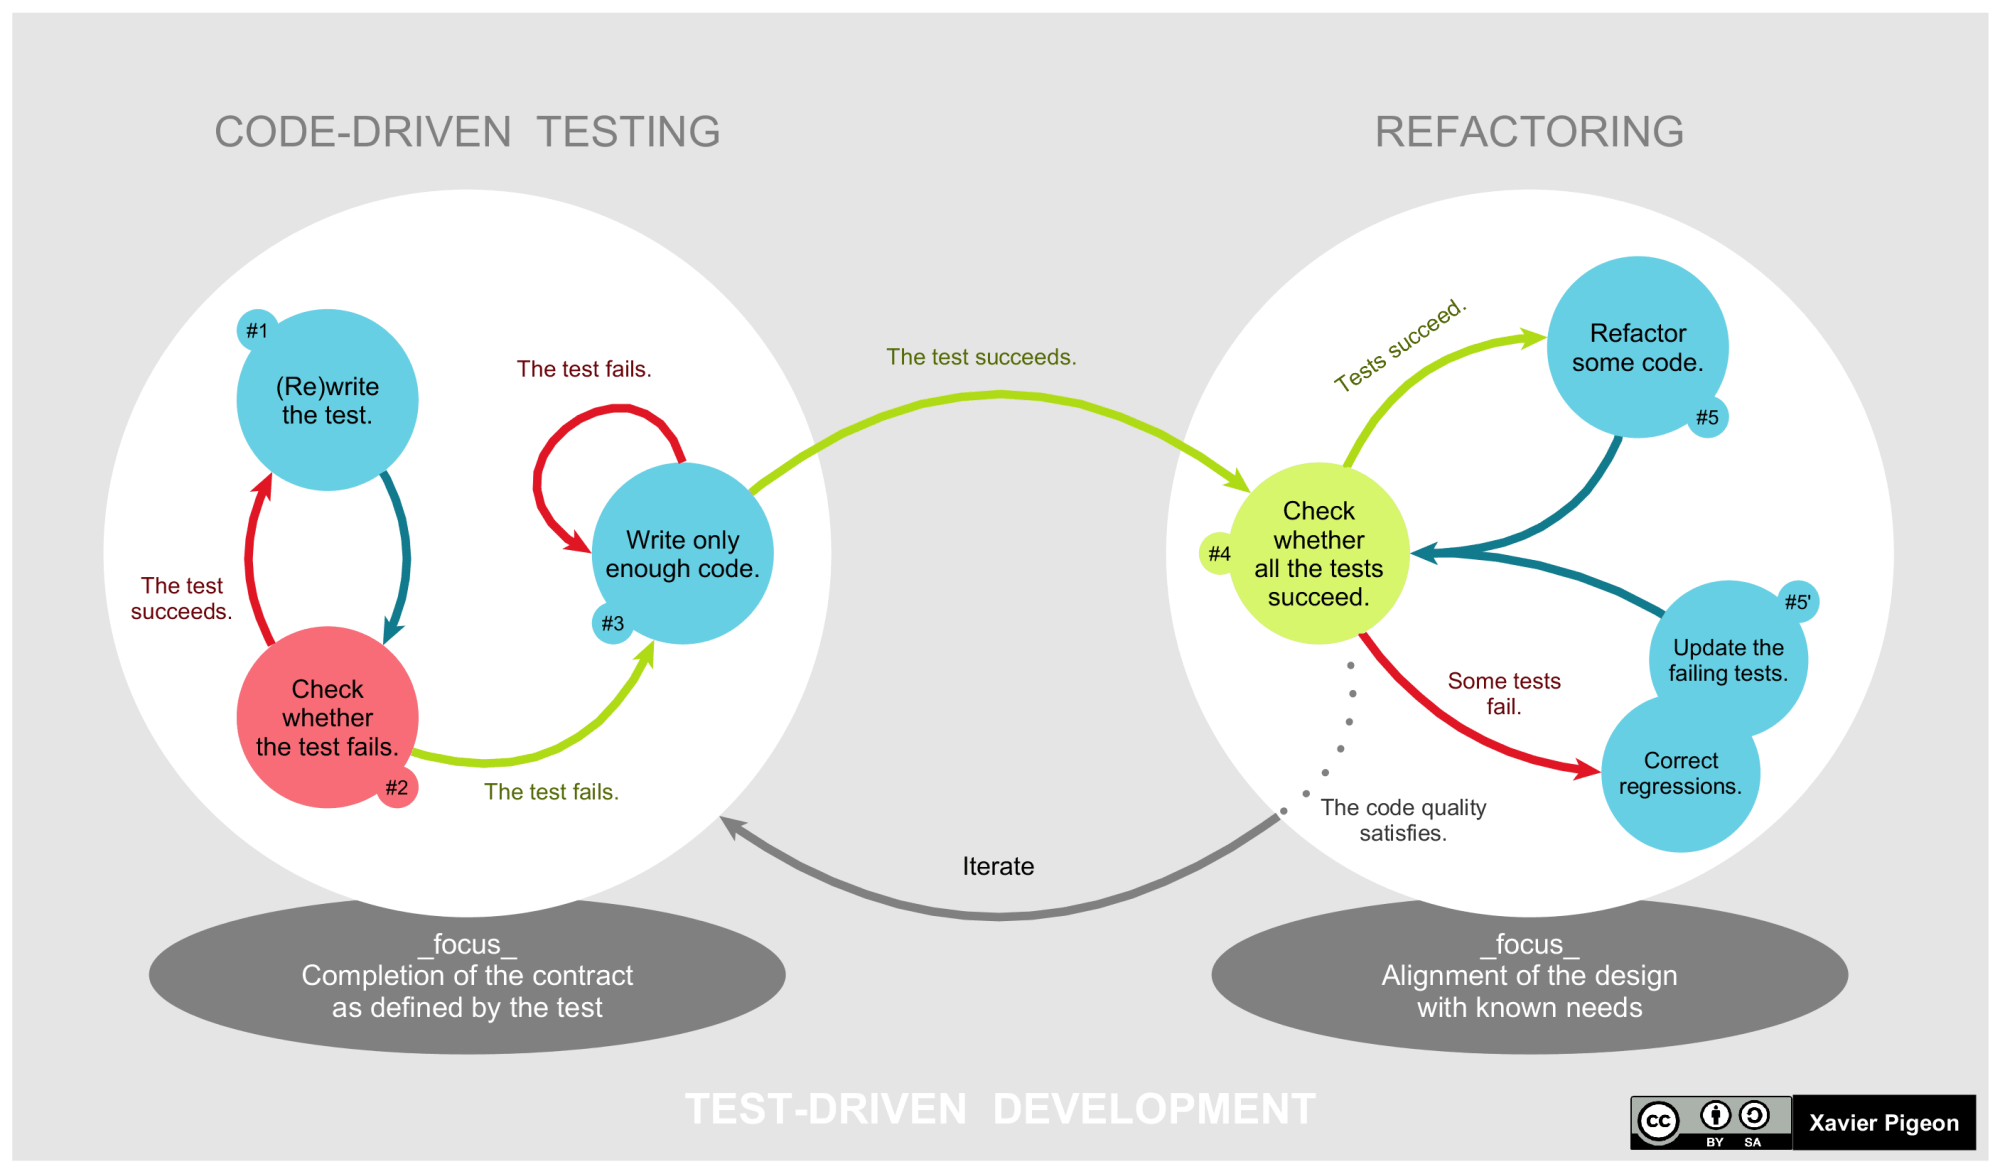 Iterative process of Test-Driven Development